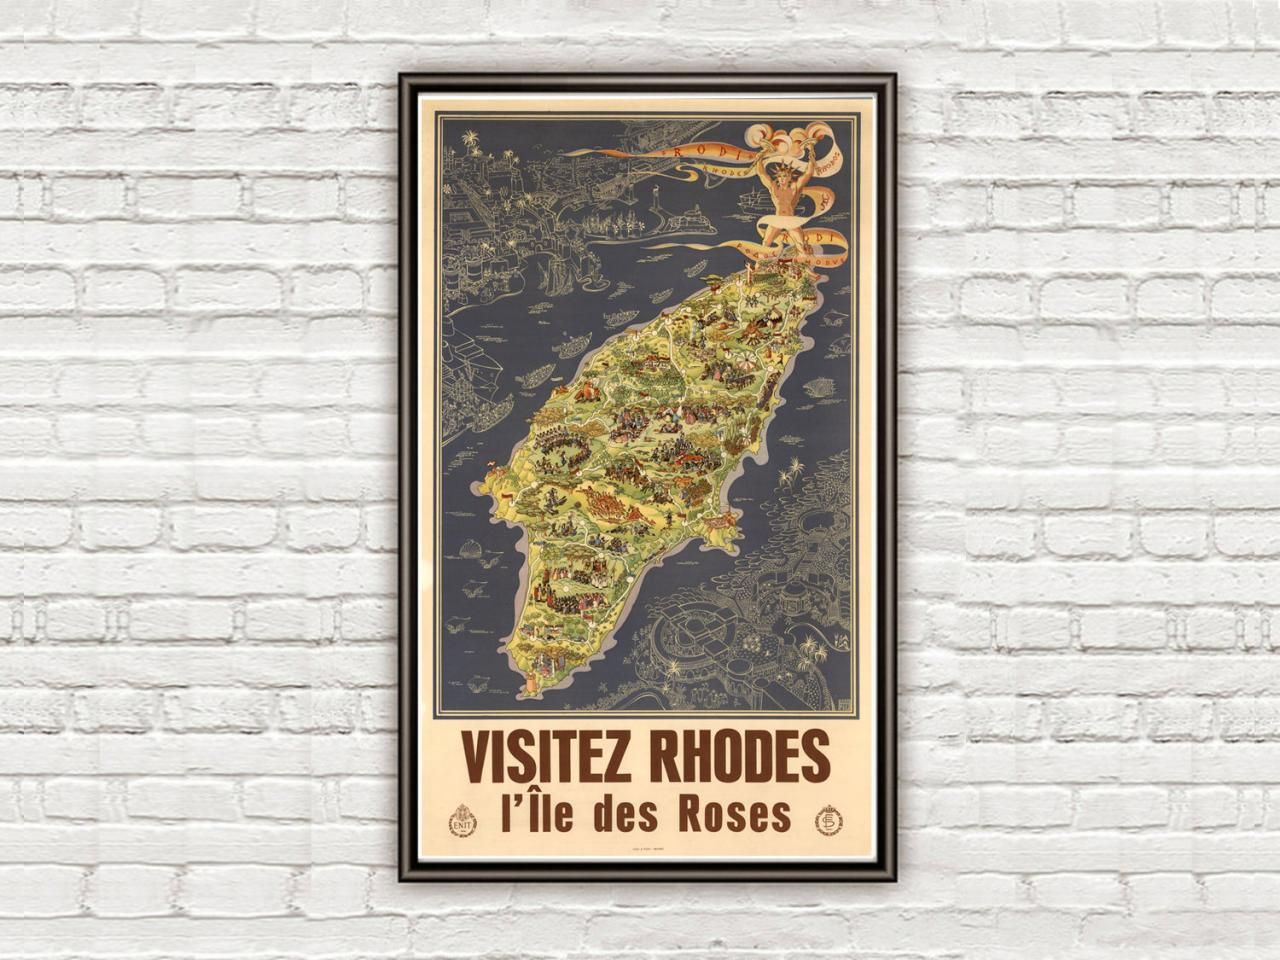 Vintage Poster of Rhodes Island Greece